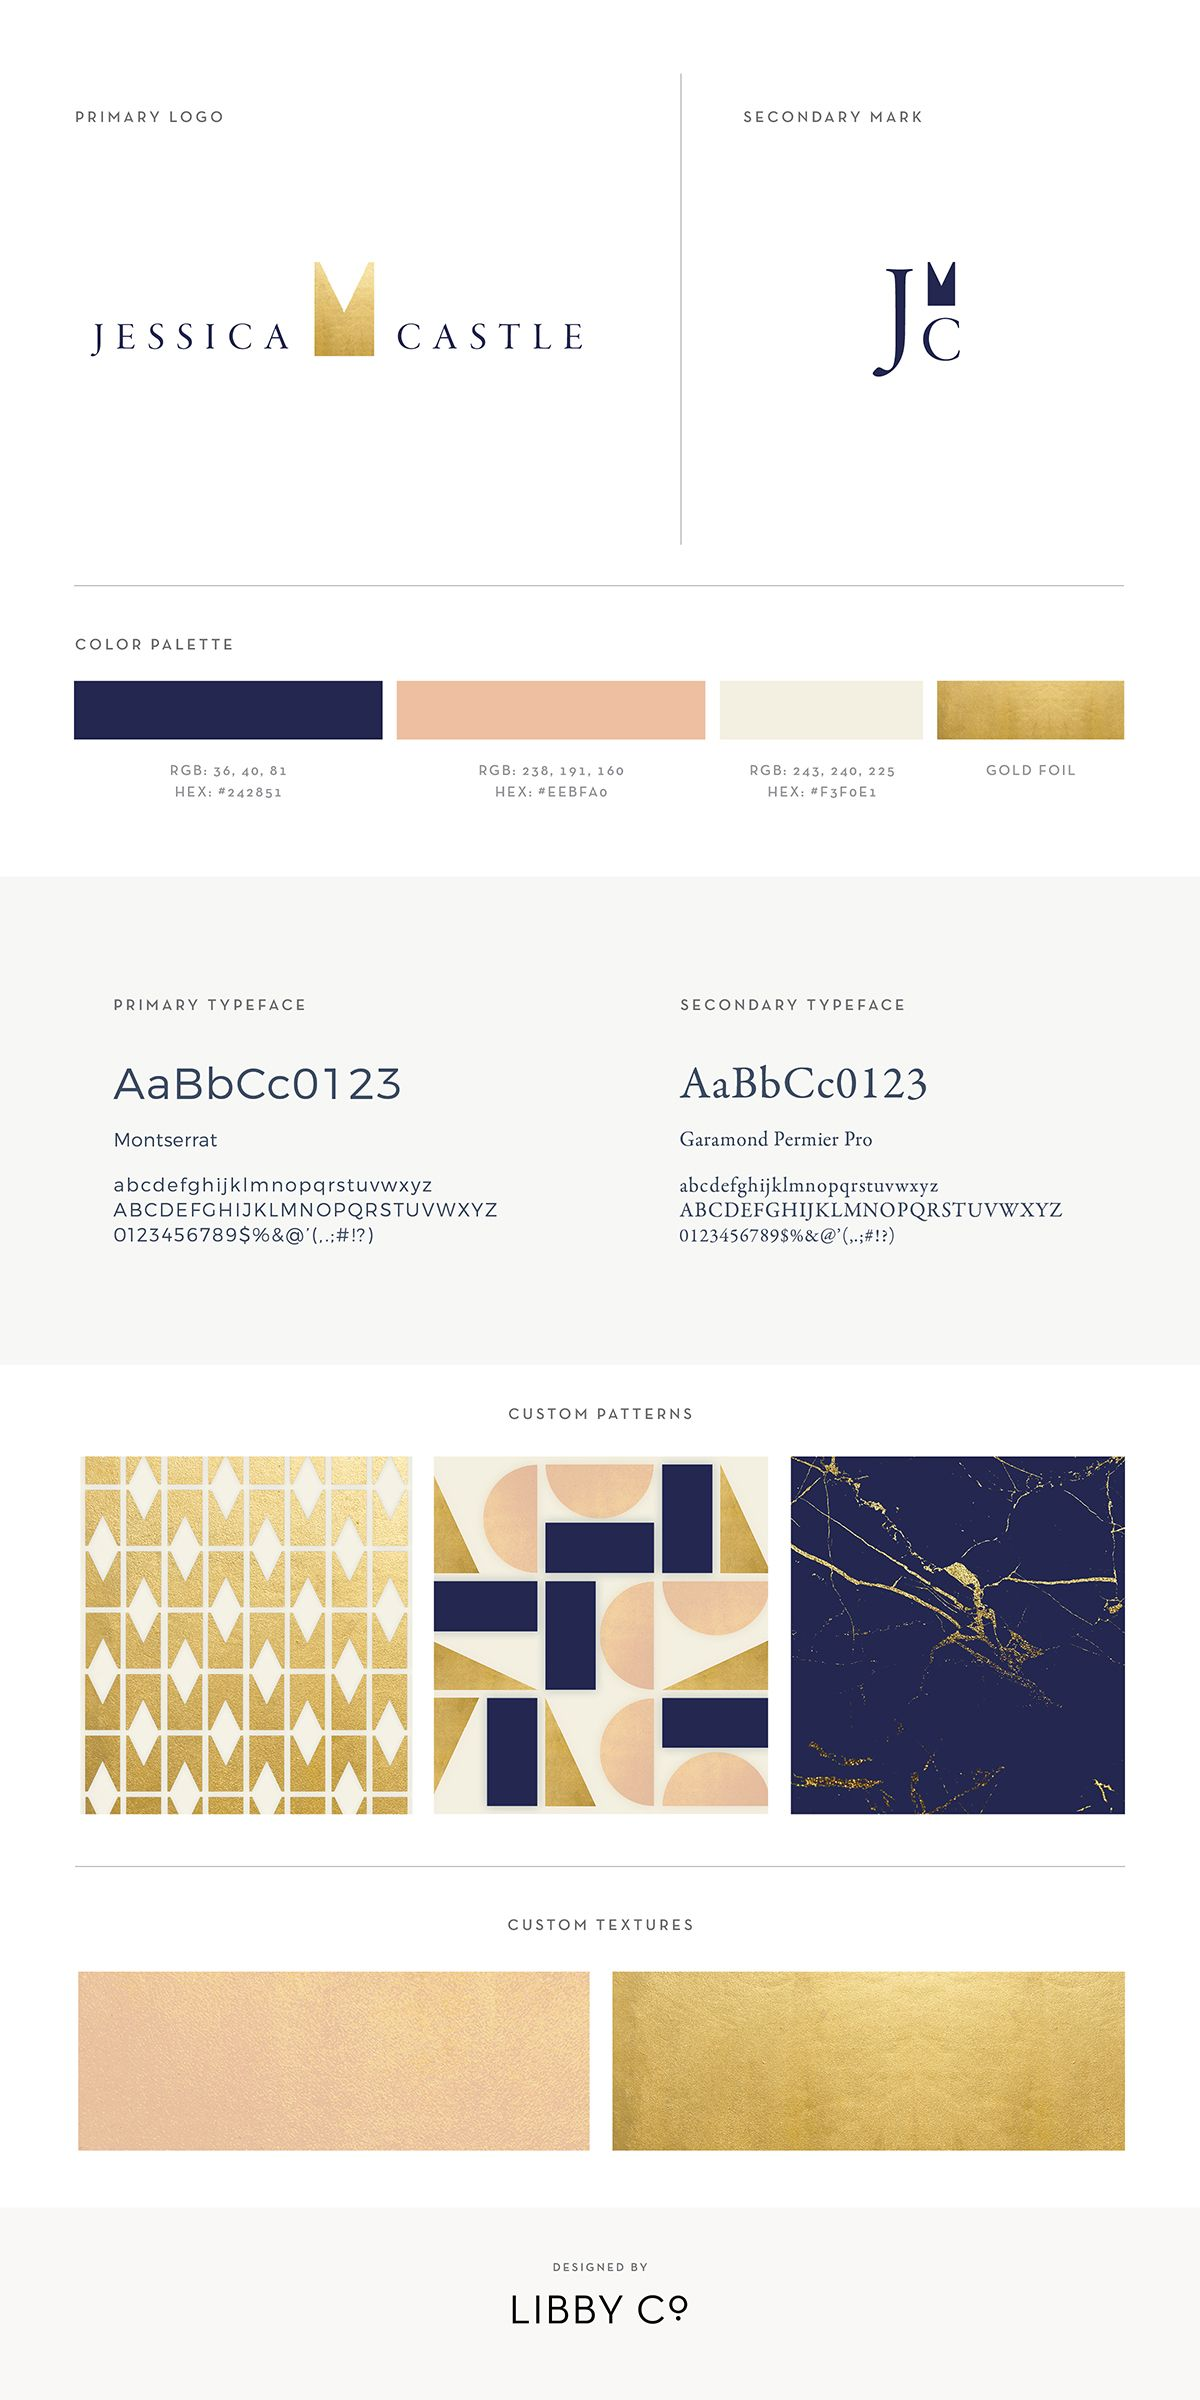 FREE BRAND STYLE GUIDE TEMPLATE Brand style guide